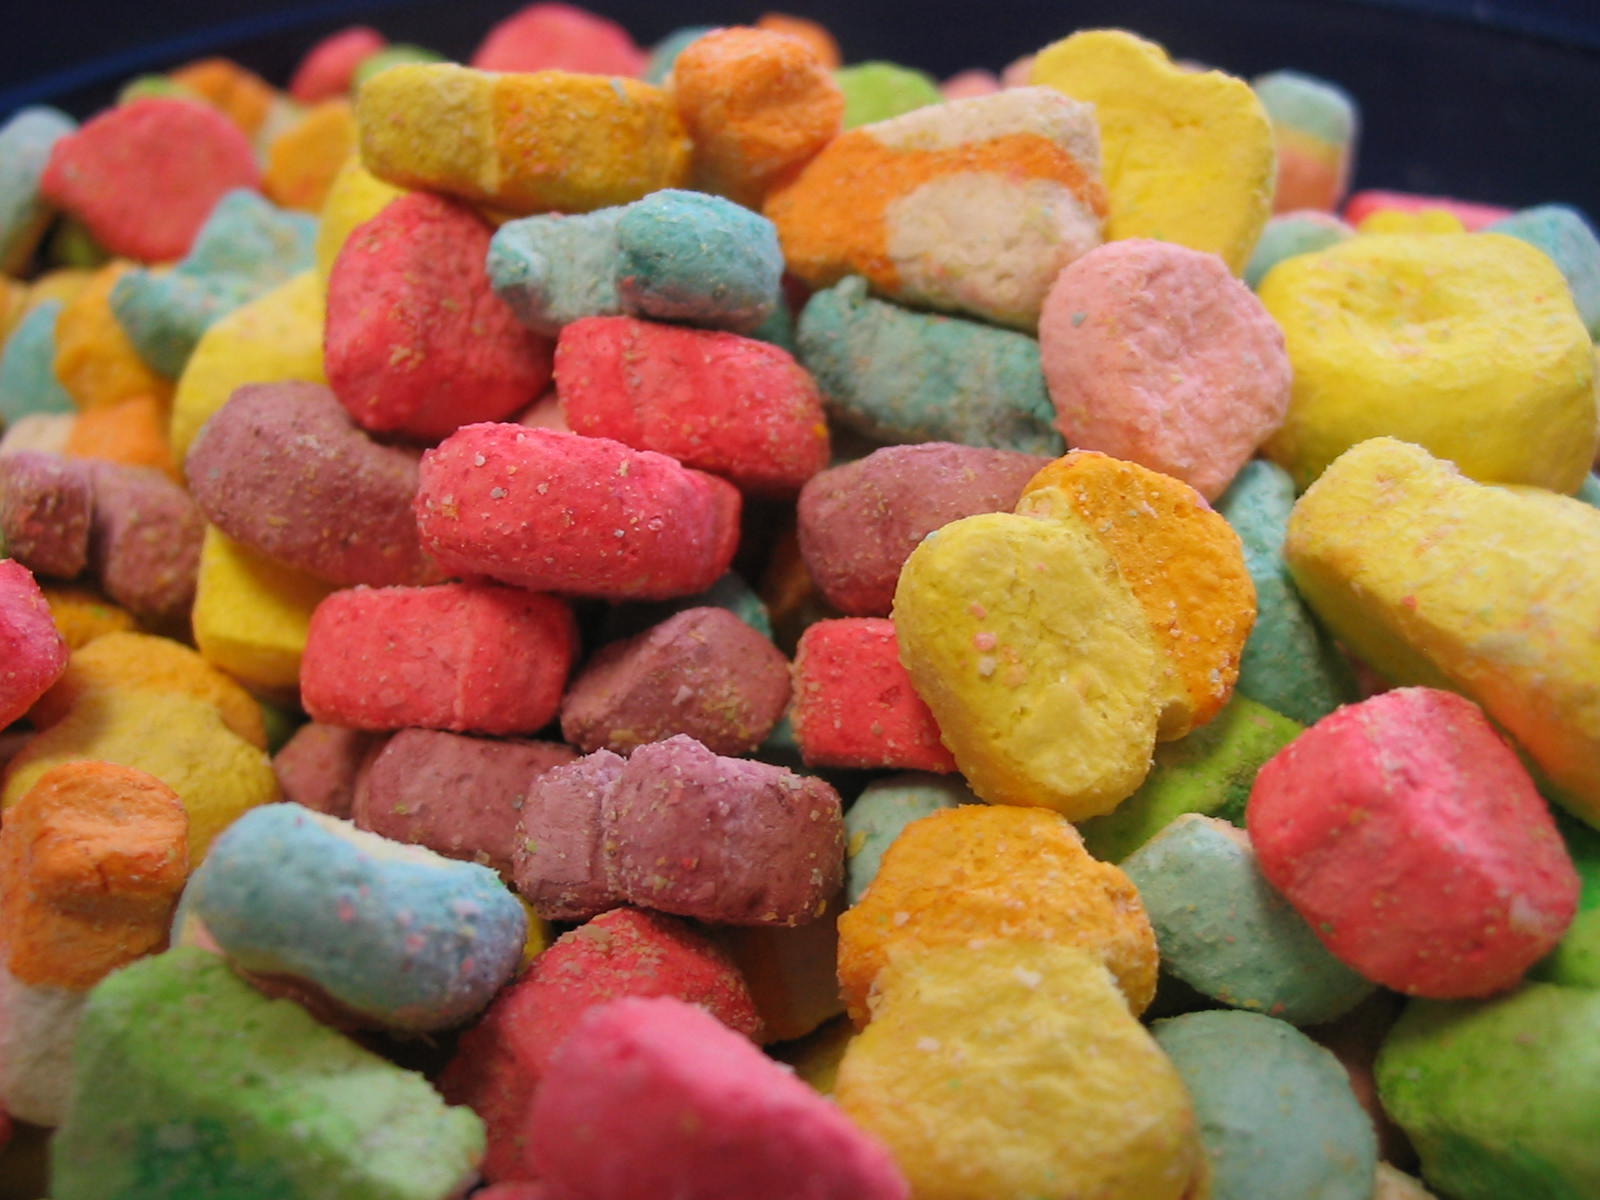 Why artificial food colours are bad for your health